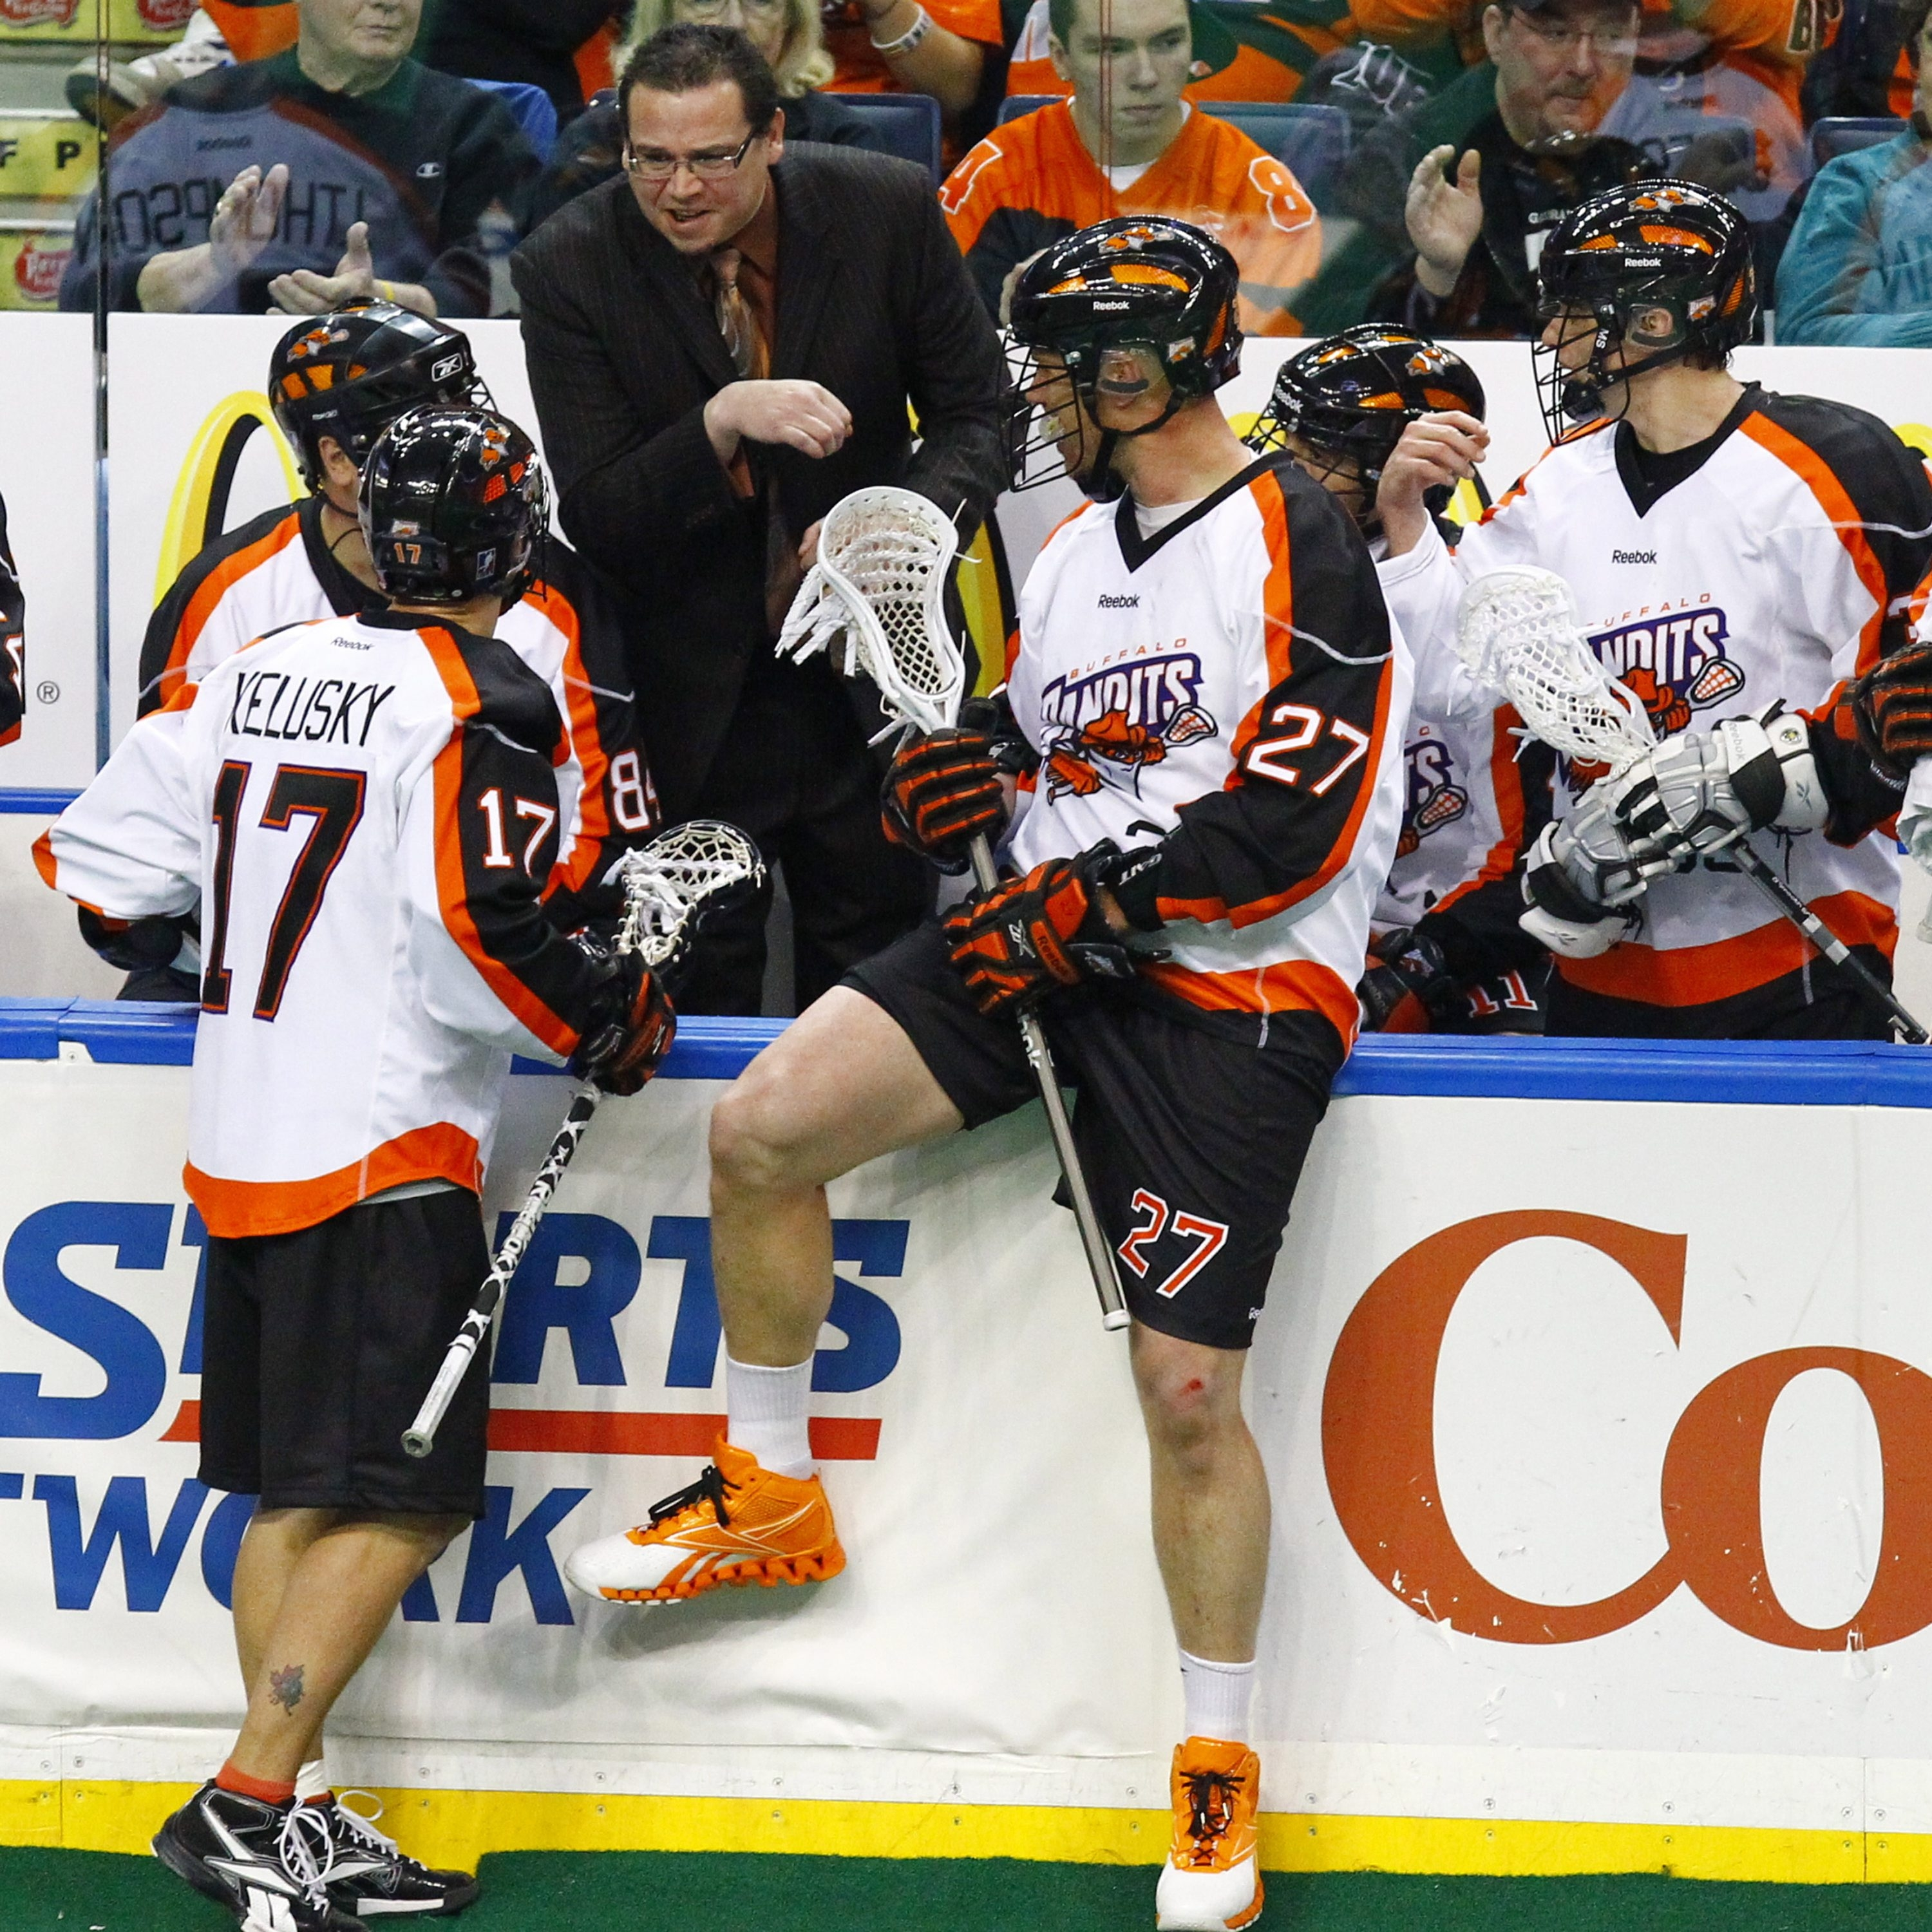 Darris Kilgour and the Bandits will no longer be synonymous with each other. The National Lacrosse League Hall of Famer helped the franchise win three titles as a player and led the Bandits to their fourth championship in his 11 seasons as a coach.